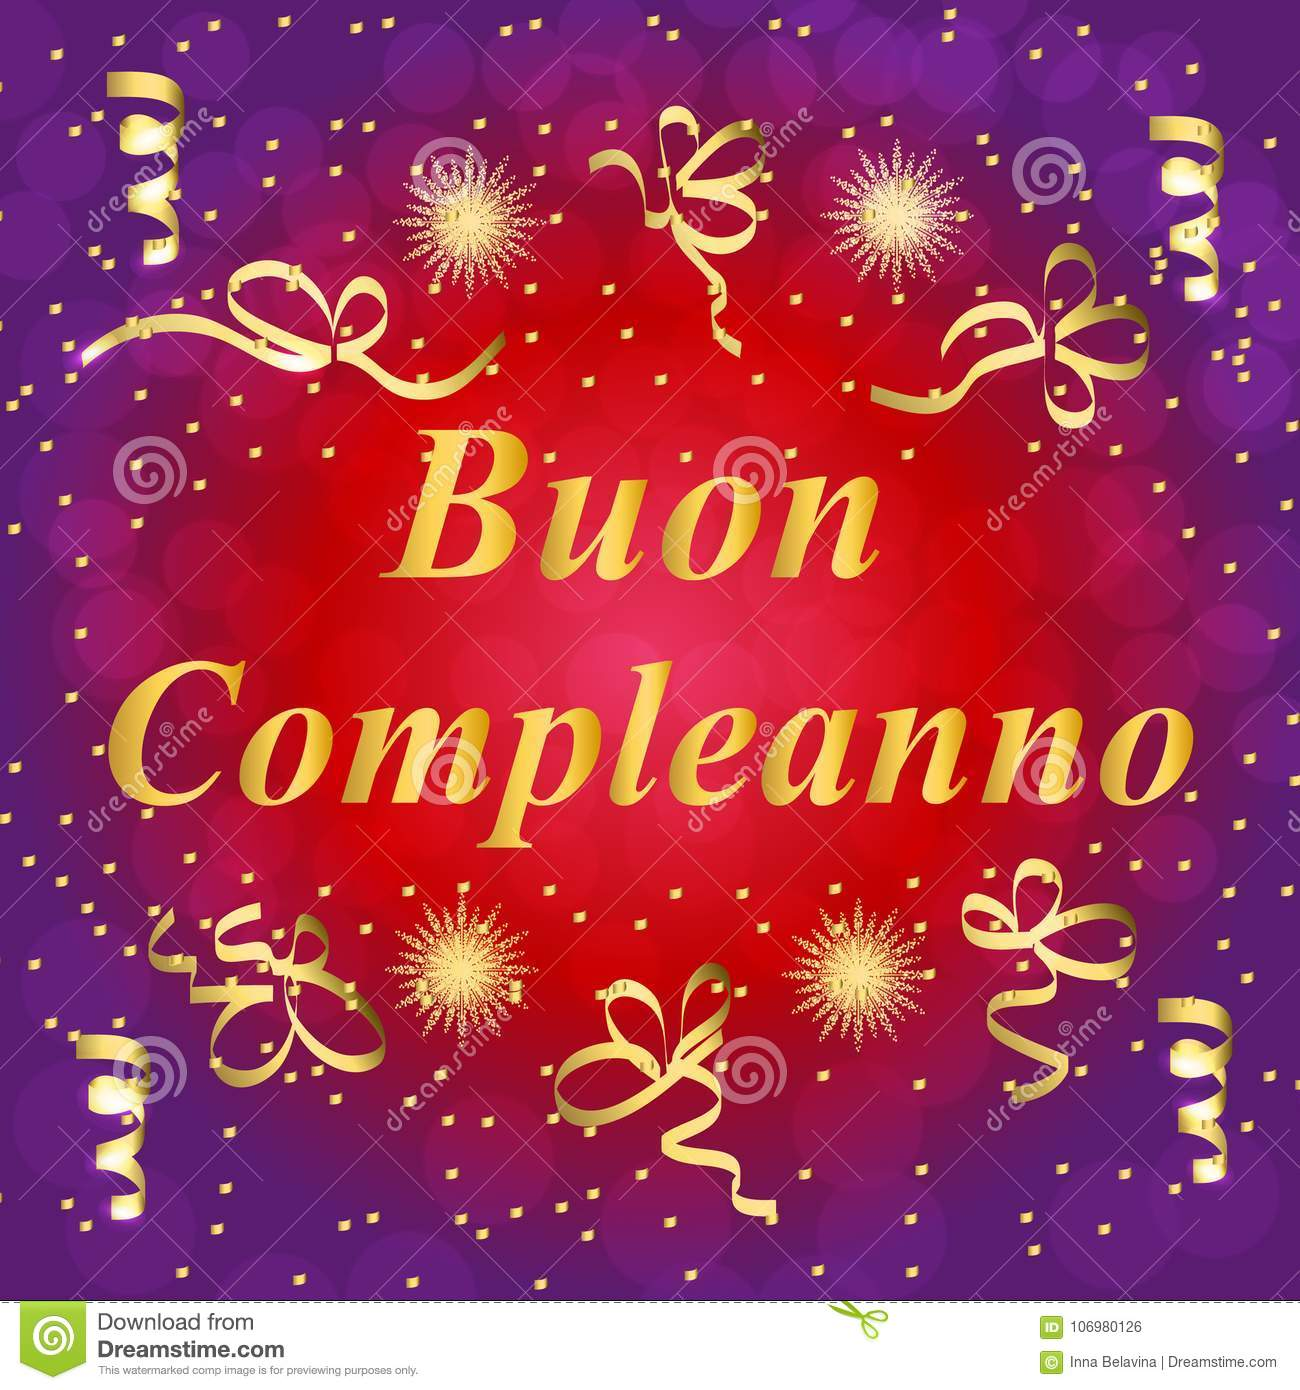 Buon Compleanno Greeting Card Brightly Colorful Illustration Happy